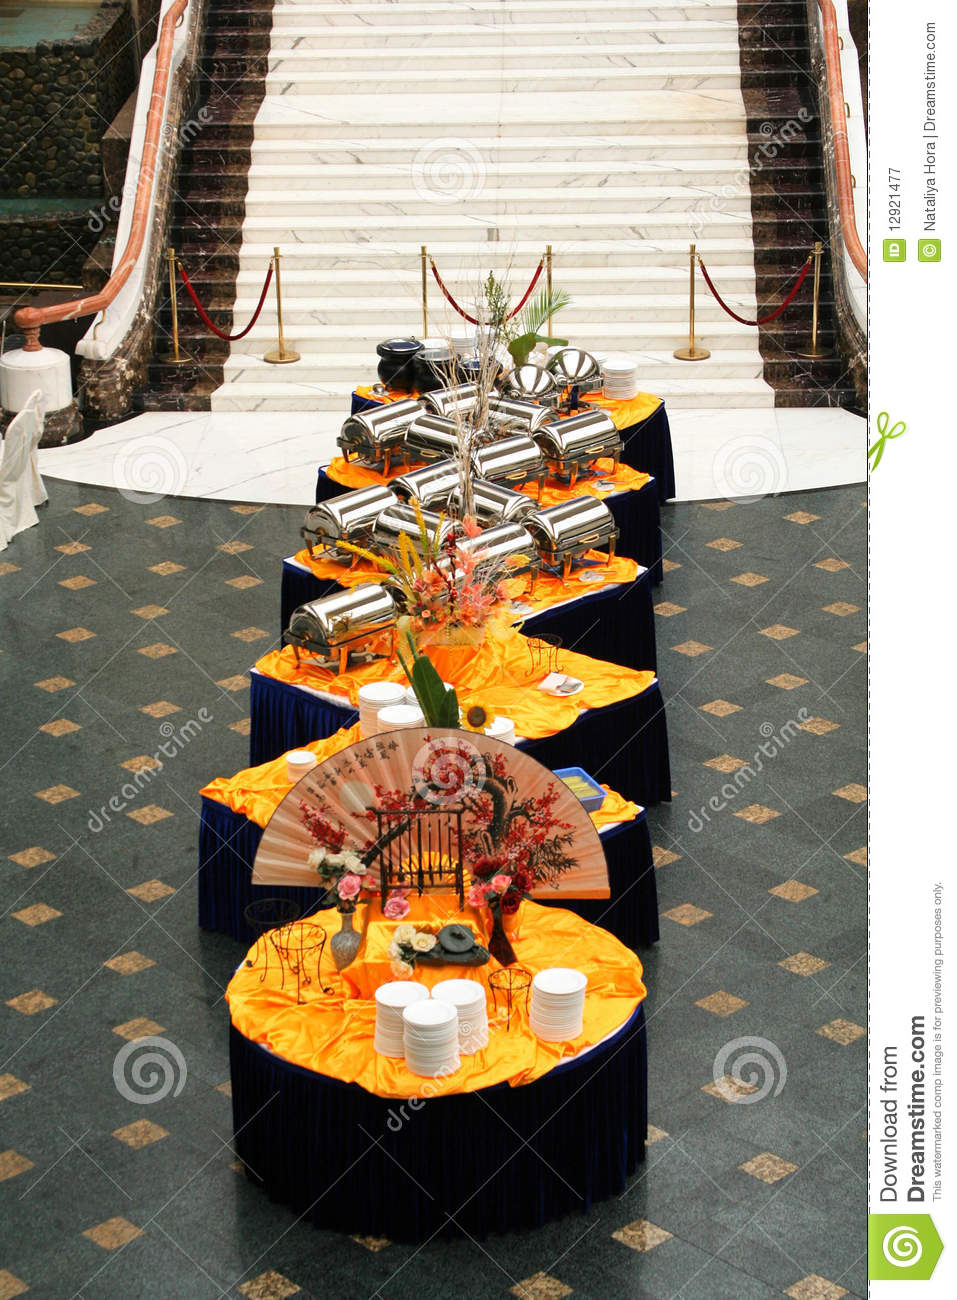 Banquet In Asian Style Royalty Free Stock Photography